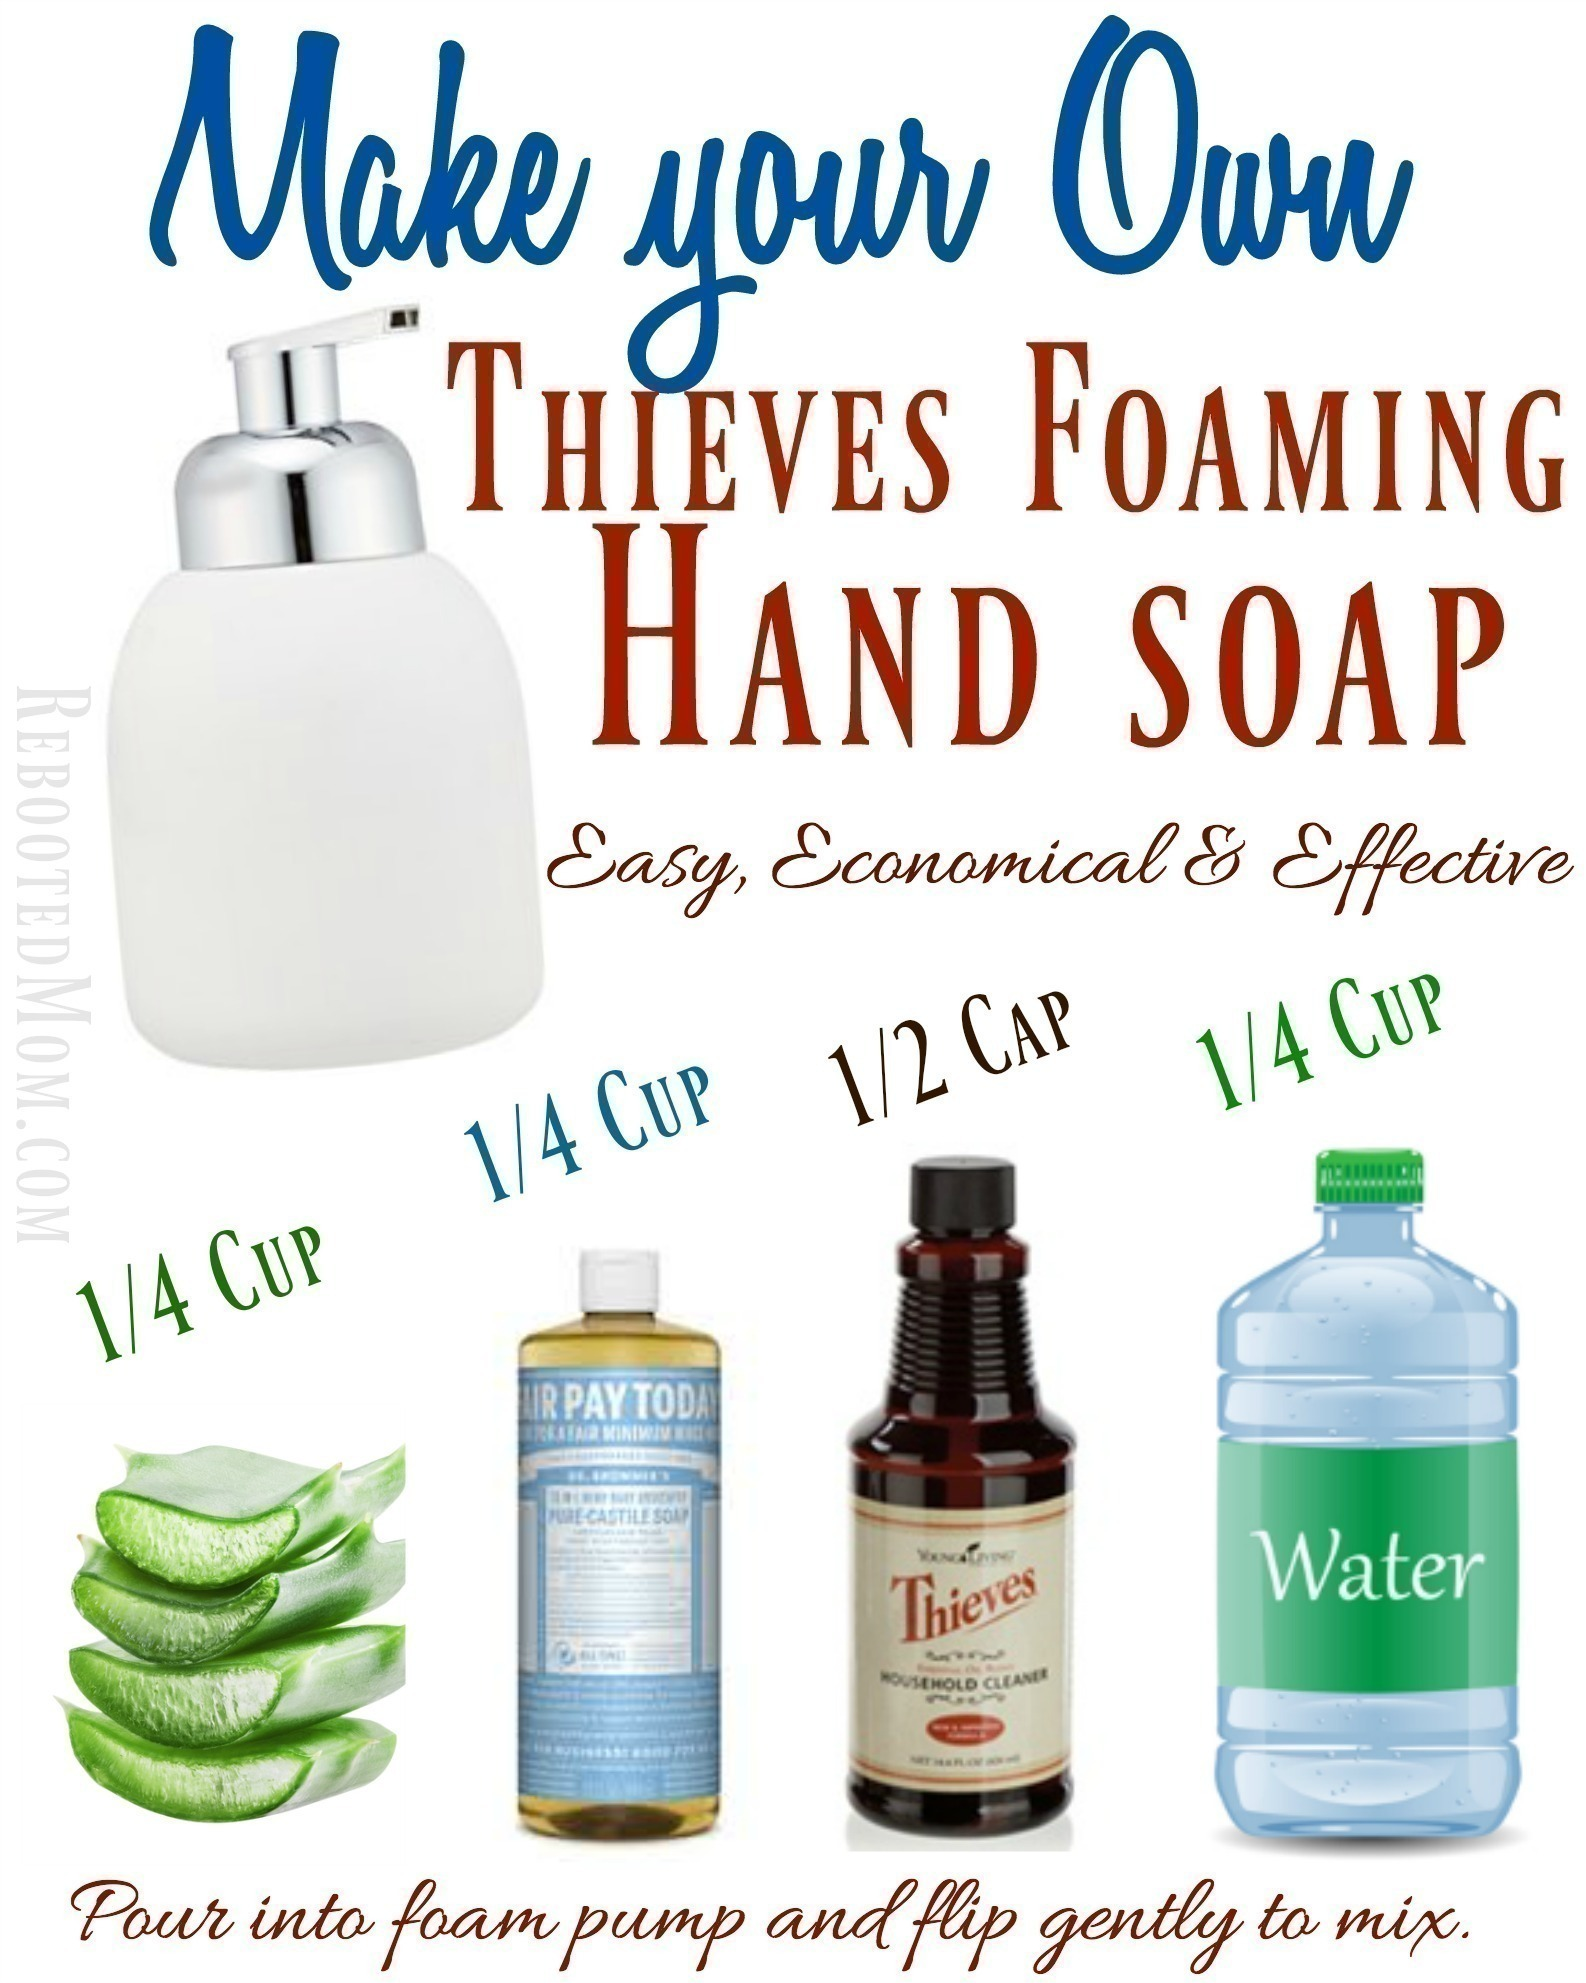 Make your Own Thieves Foaming Hand Soap - Rebooted Mom